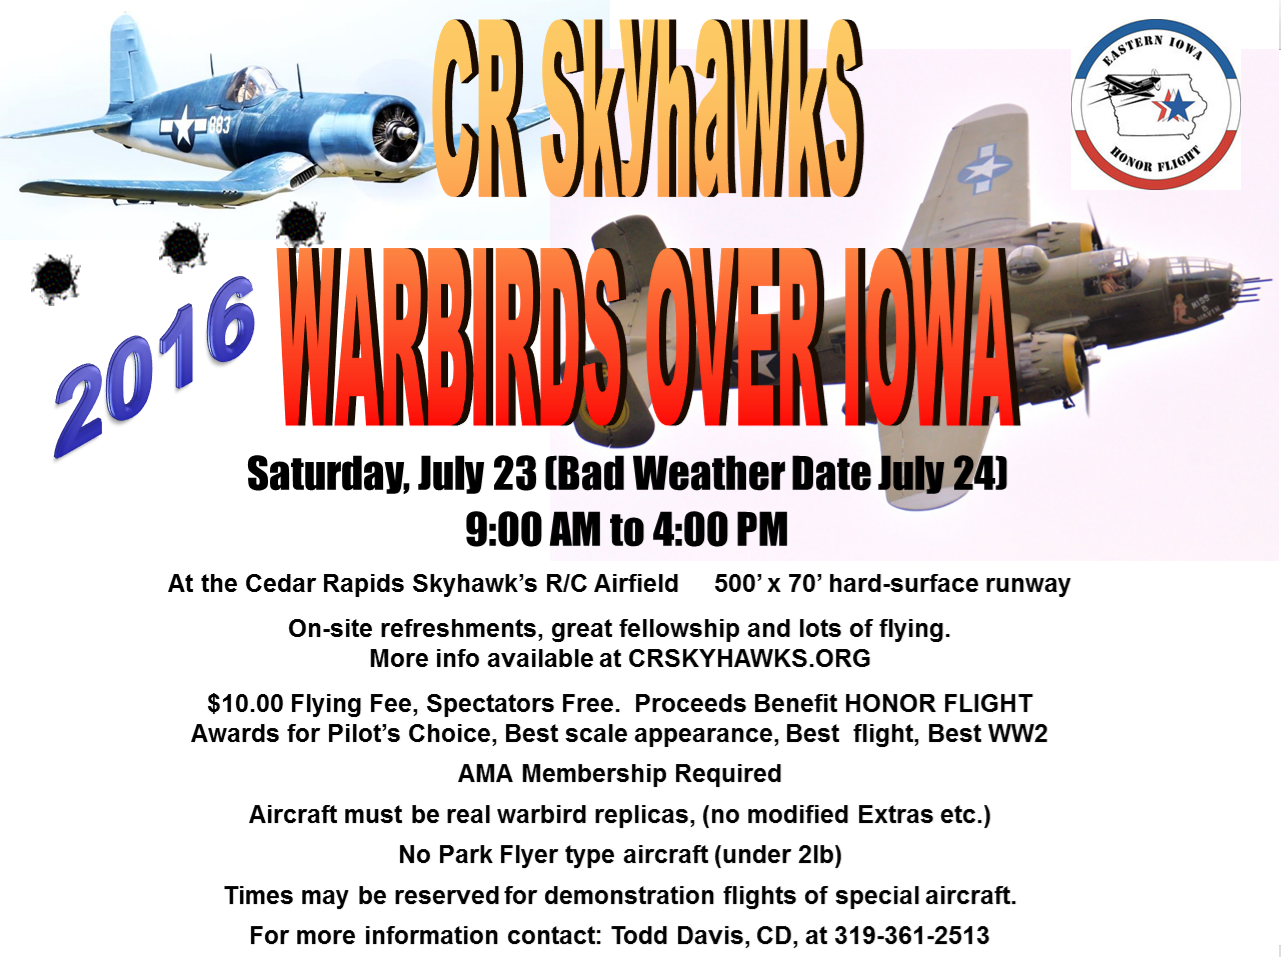 Click image for larger version  Name:Warbirds Over Iowa 2016.png Views:164 Size:778.9 KB ID:2146861